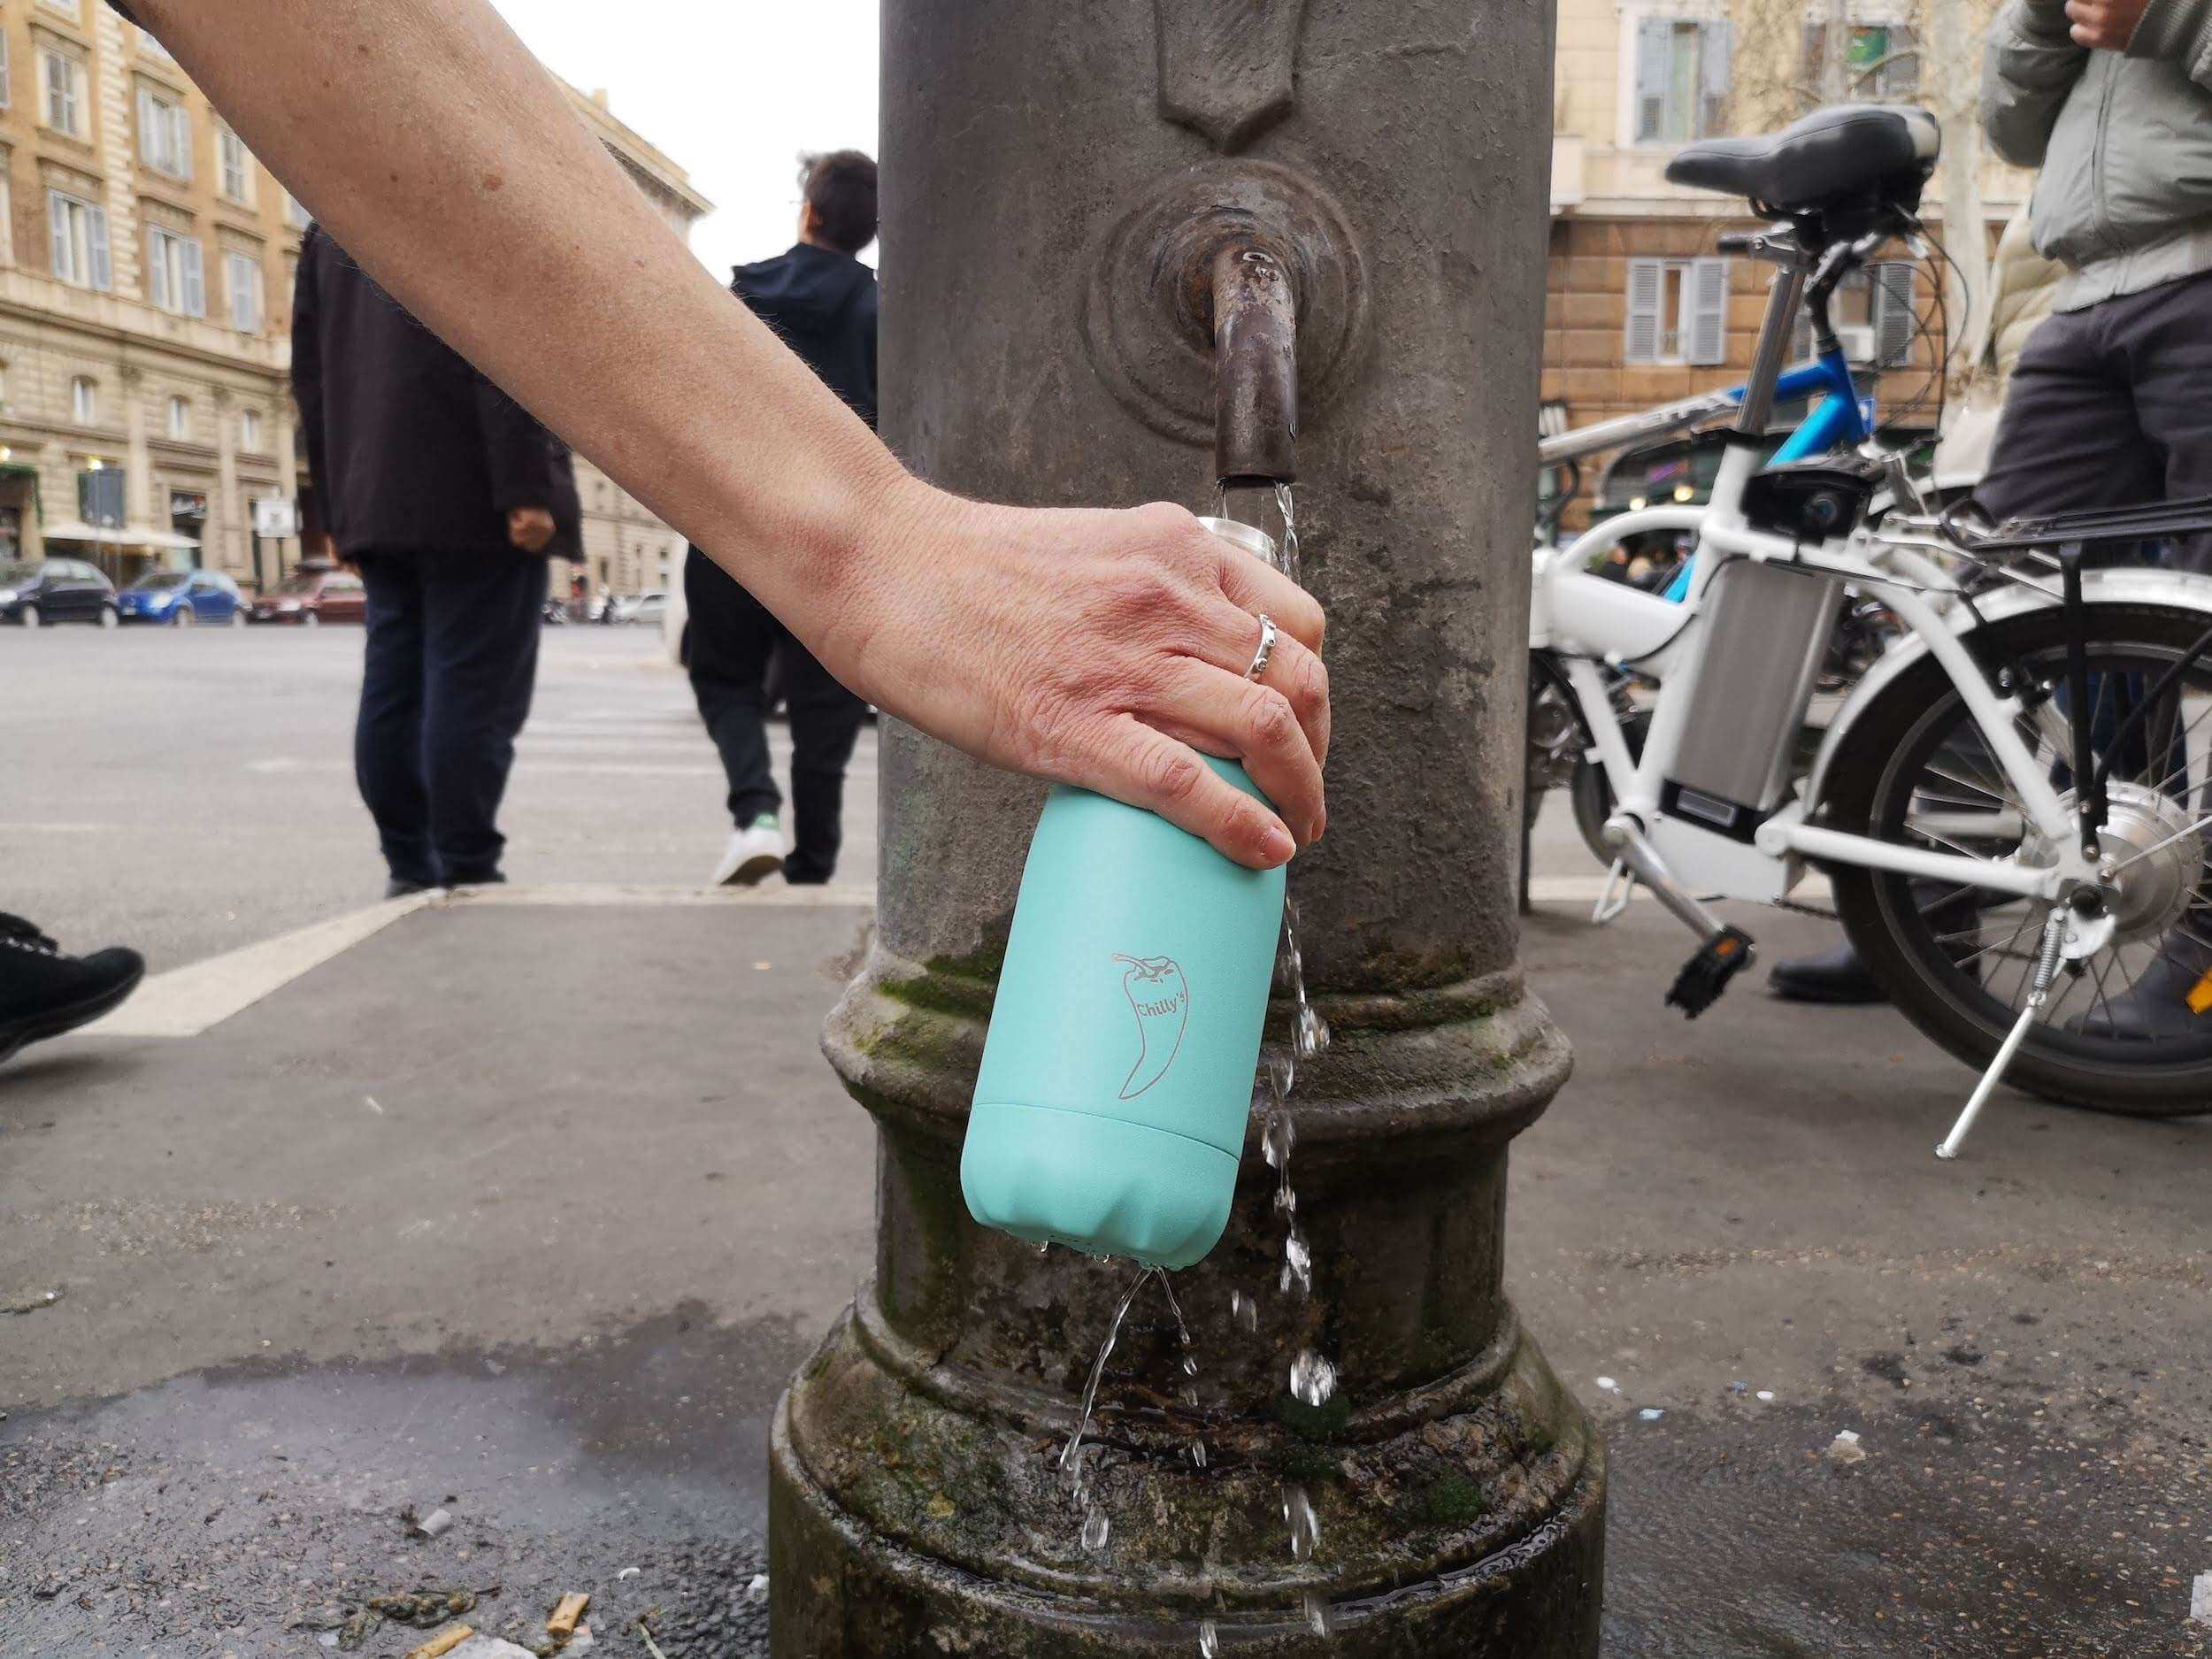 a person refilling a light blue chilly's bottle